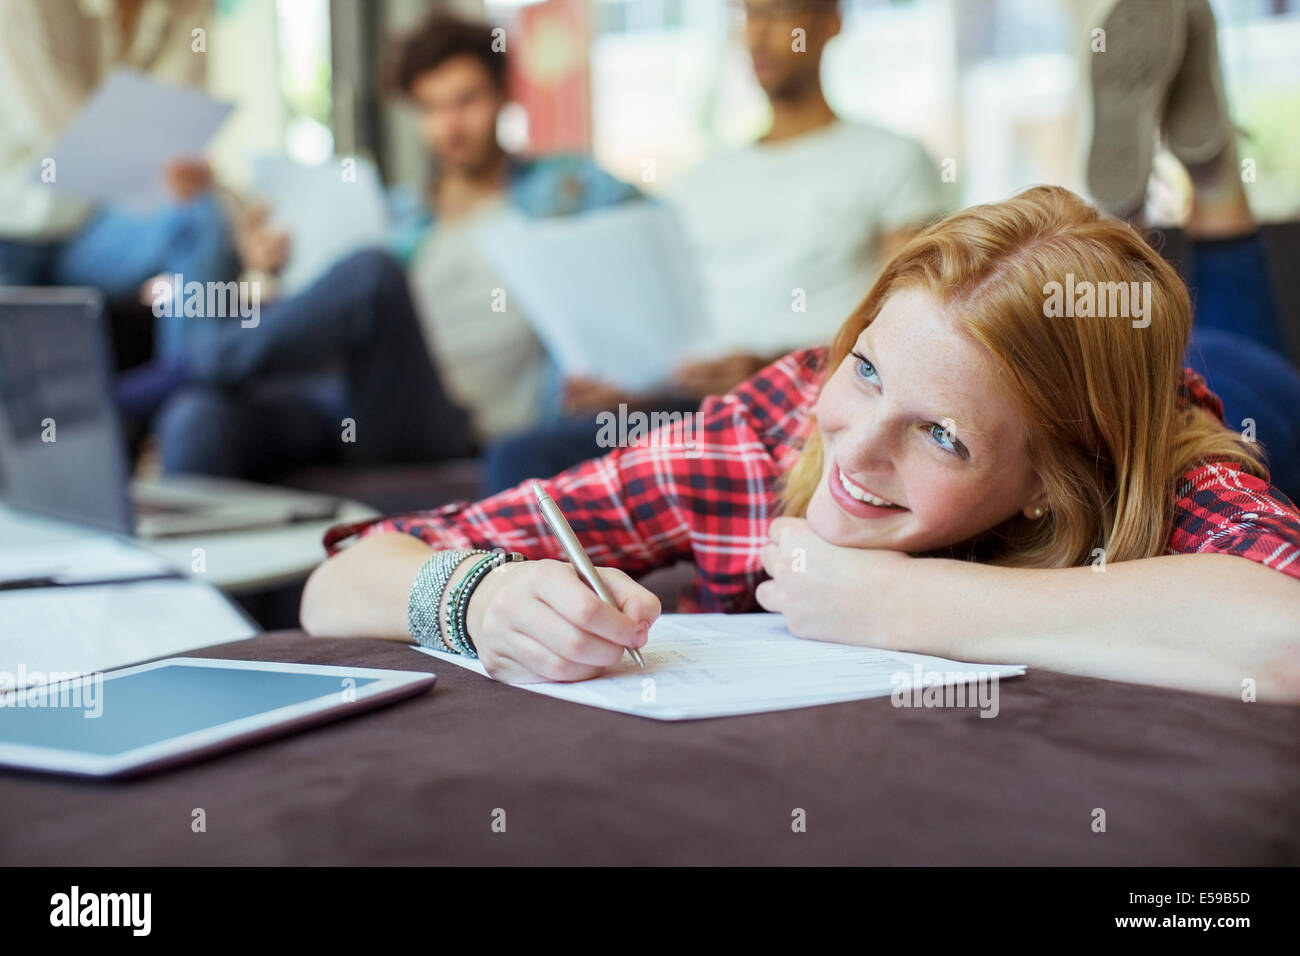 Woman writing in office - Stock Image